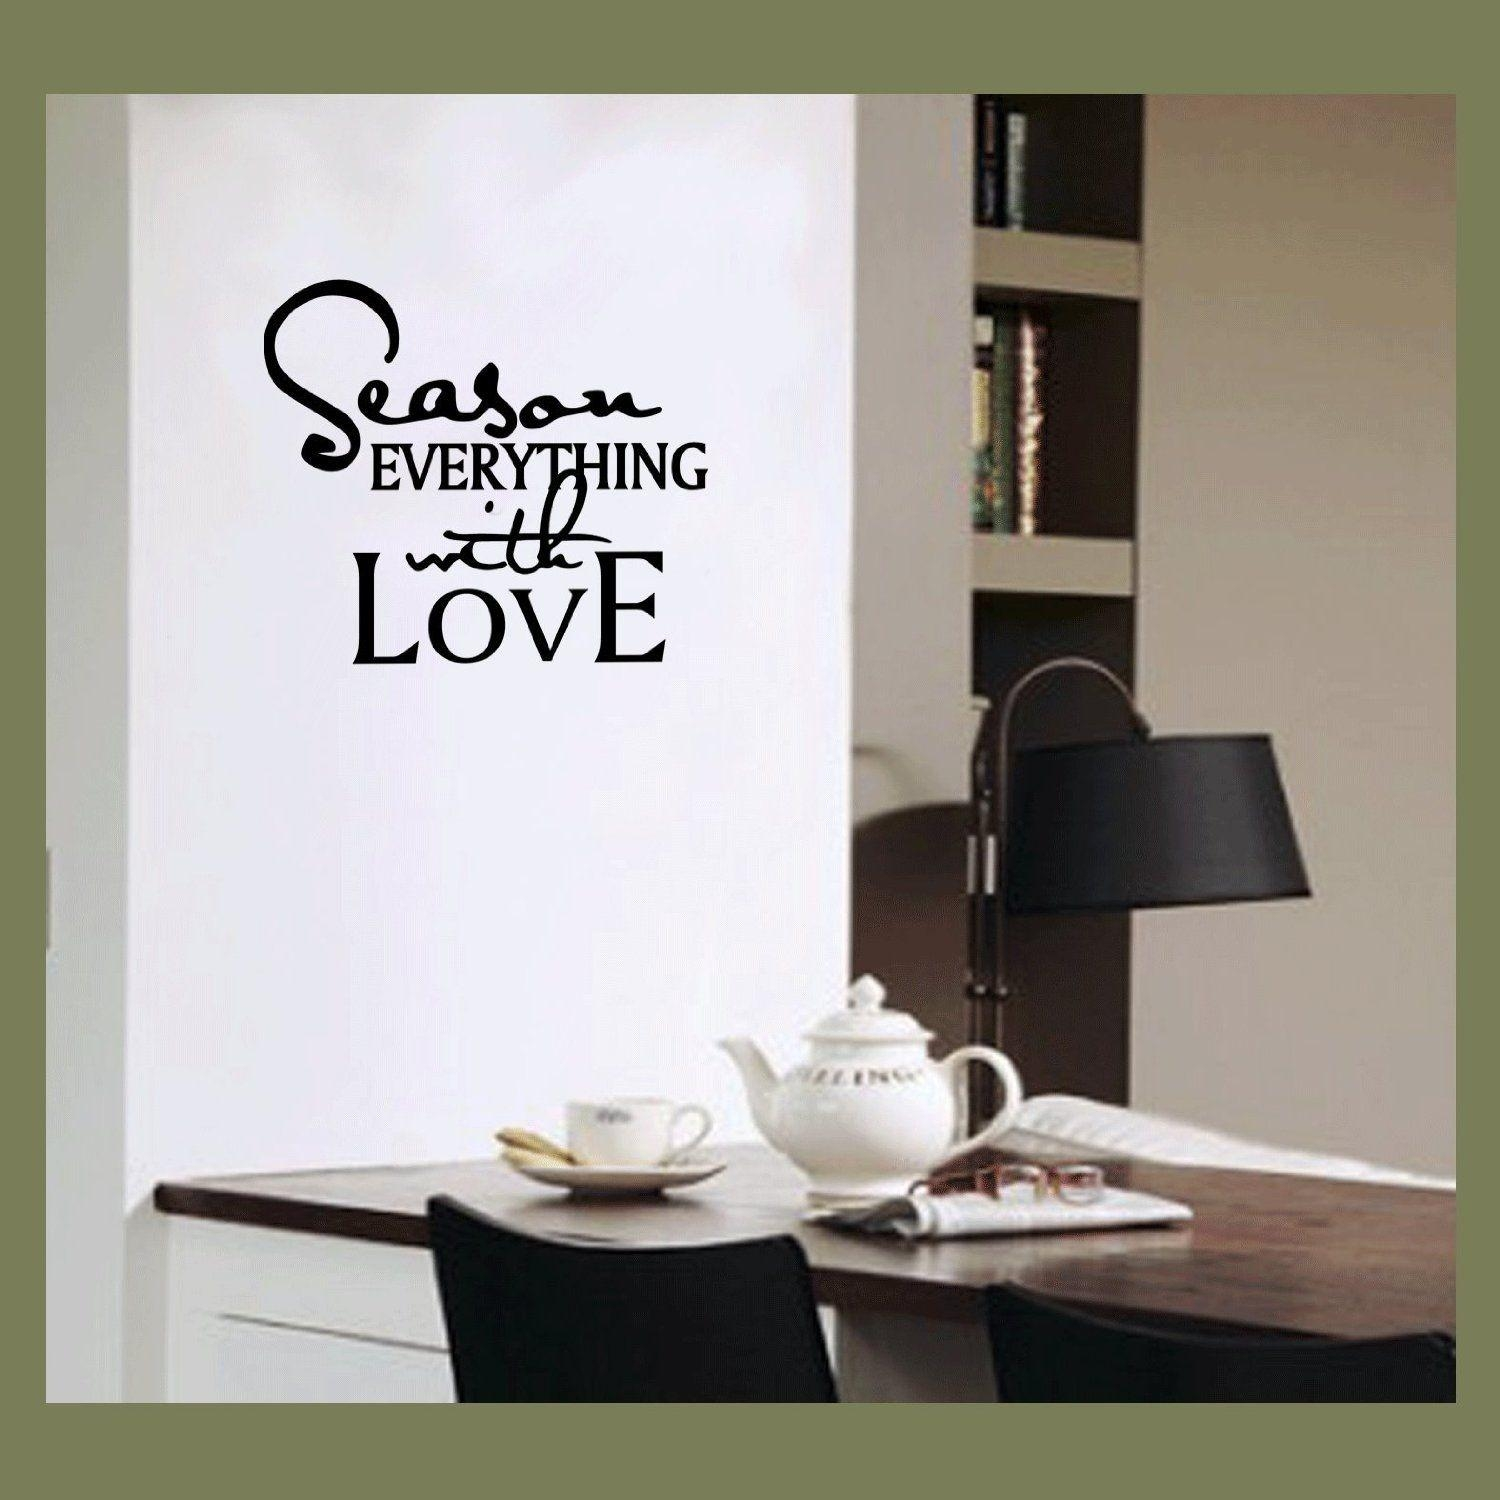 Wall Decal Design (View 7 of 20)